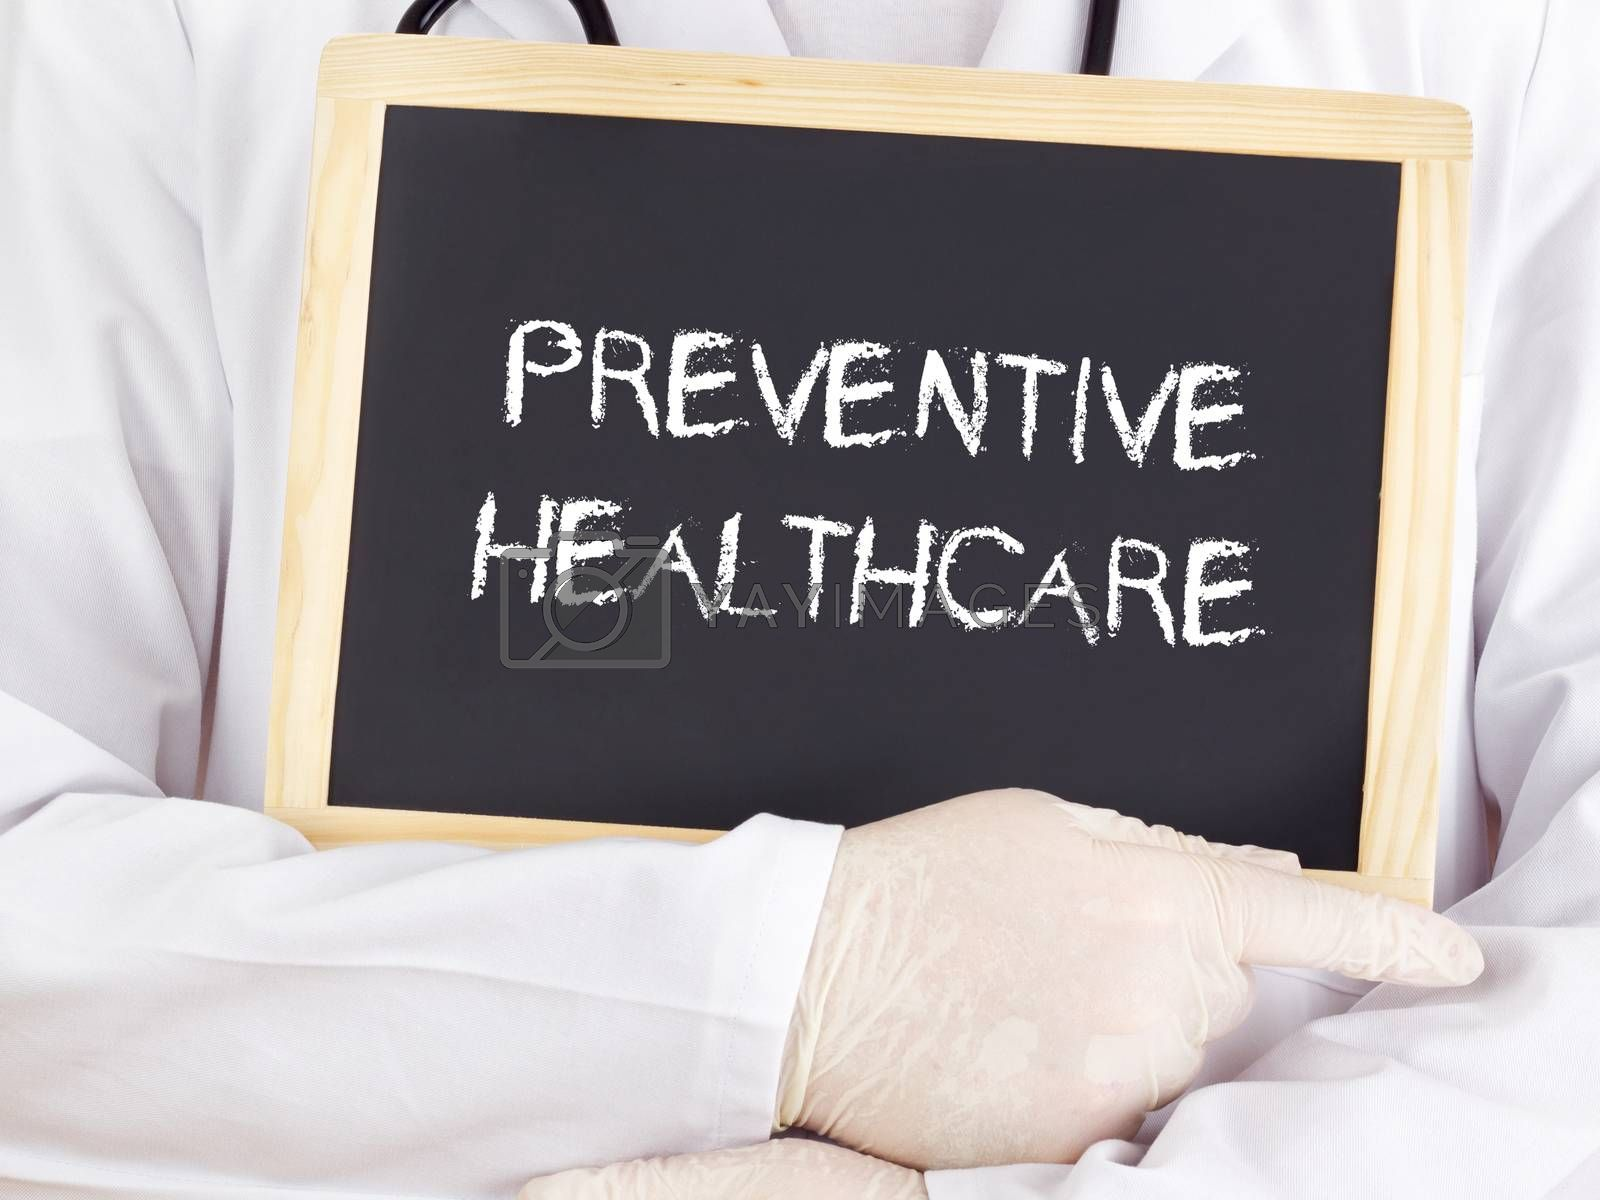 Doctor shows information: preventive healthcare